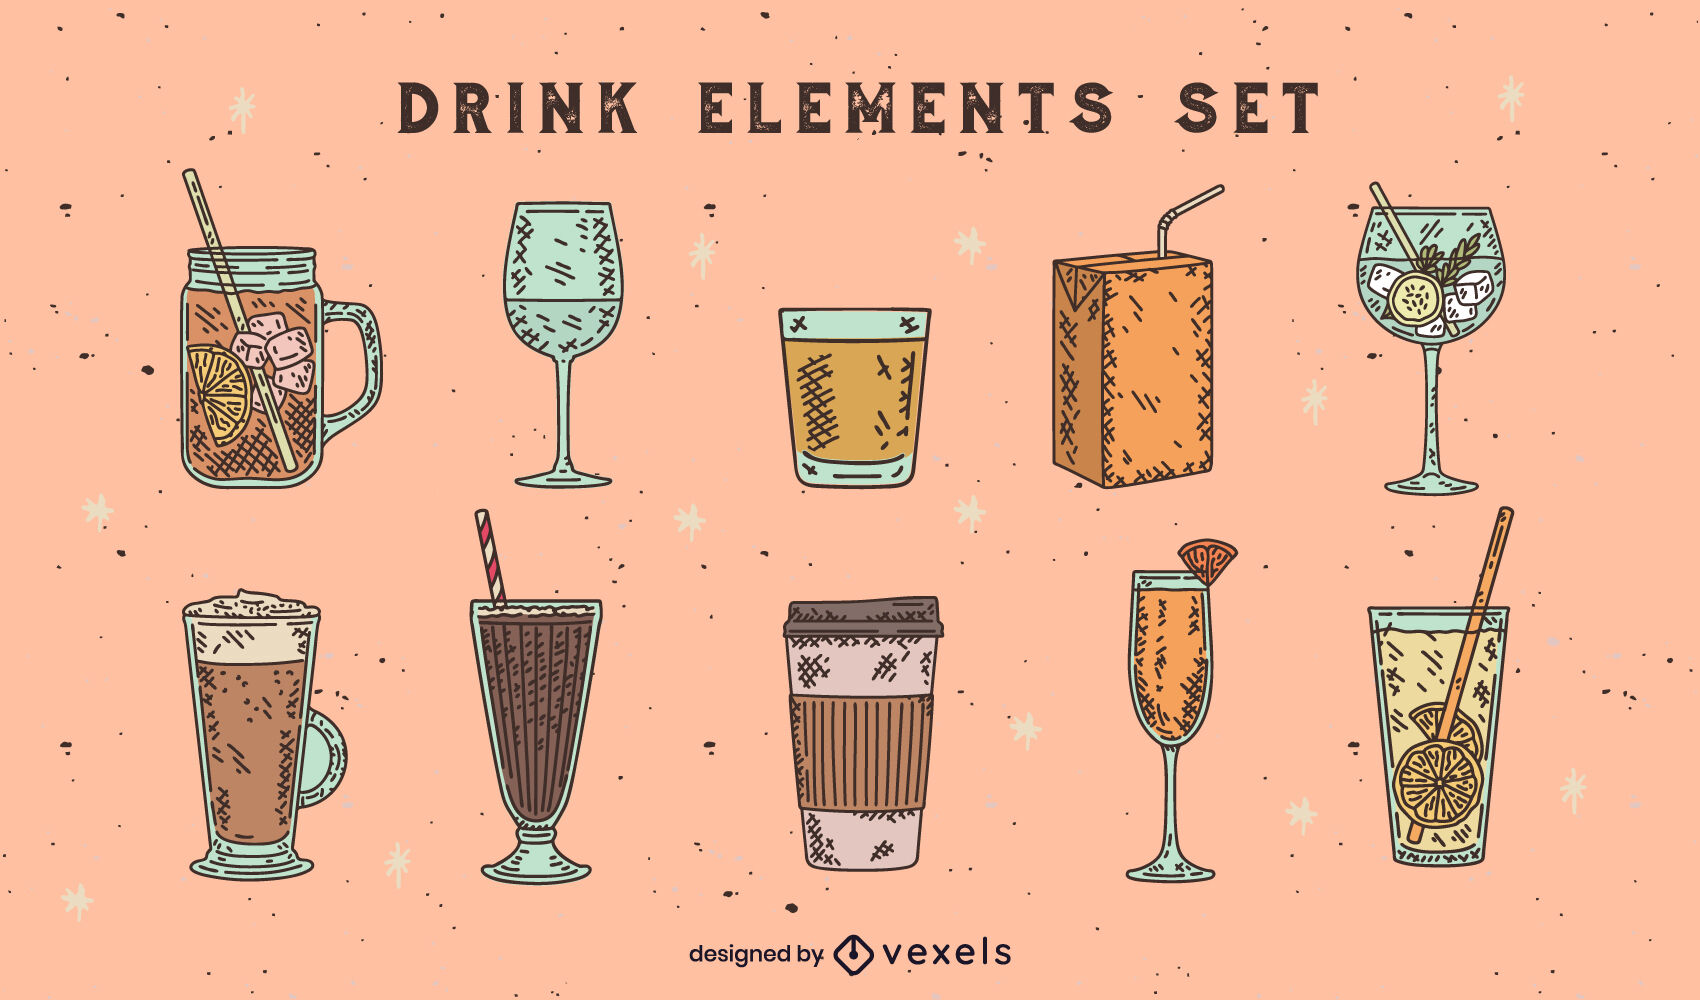 Drink elements color hand drawn